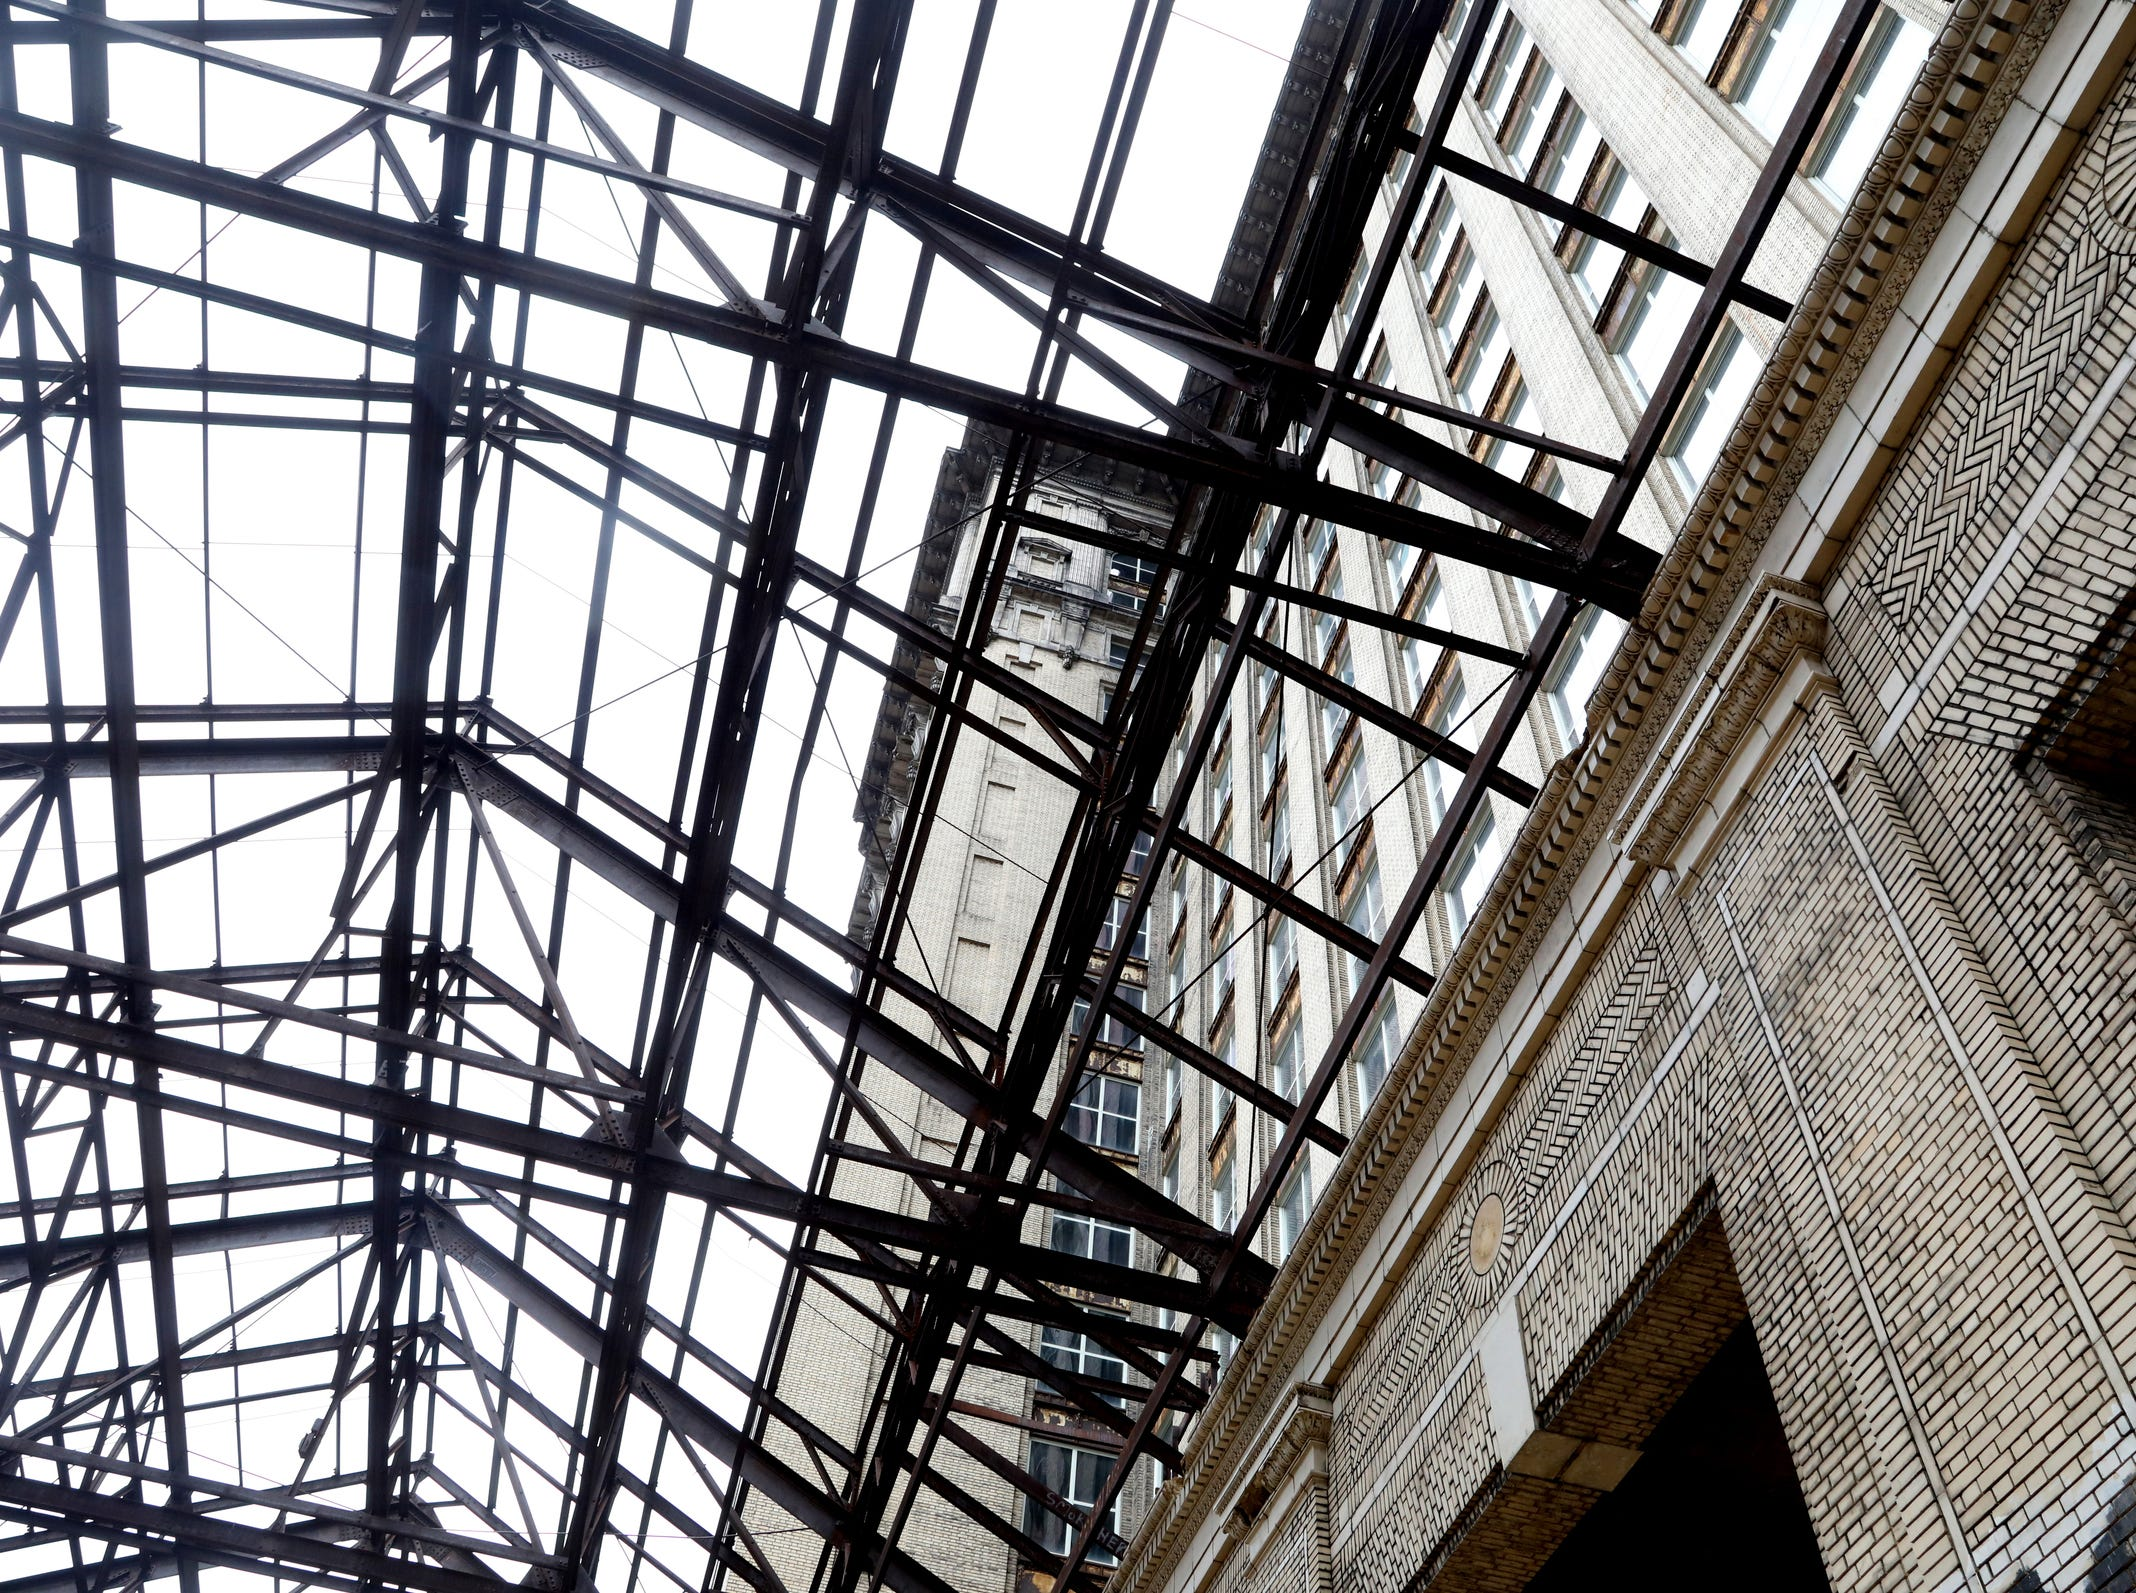 Part of the interior of Michigan Central Station in Detroit shown during a tour for the media on Tuesday, December 4, 2018.